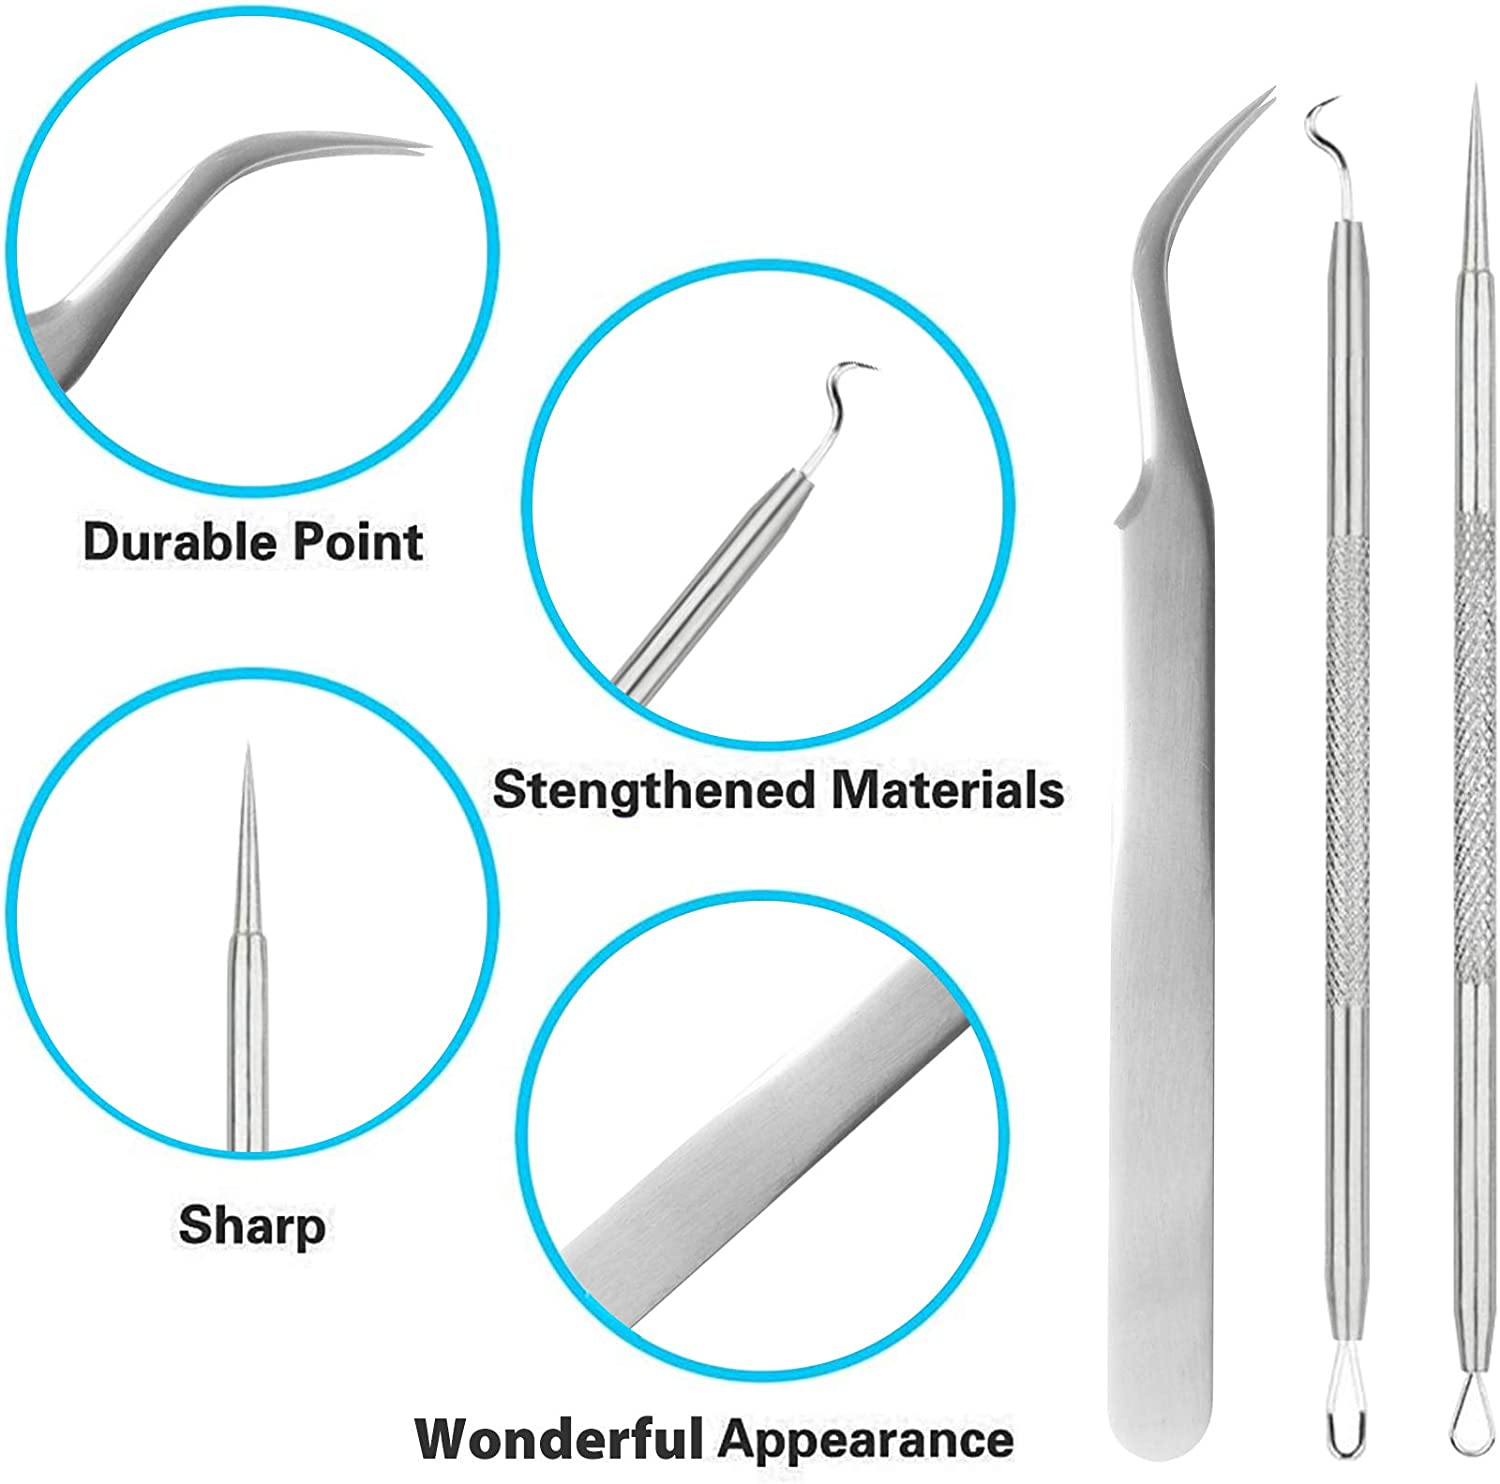 Lettering Silhouettes Cameos 15PACK Weeding Tools For Vinyl Craft Vinyl Weeding Tool Weeding Craft Tools for Weeding Vinyl